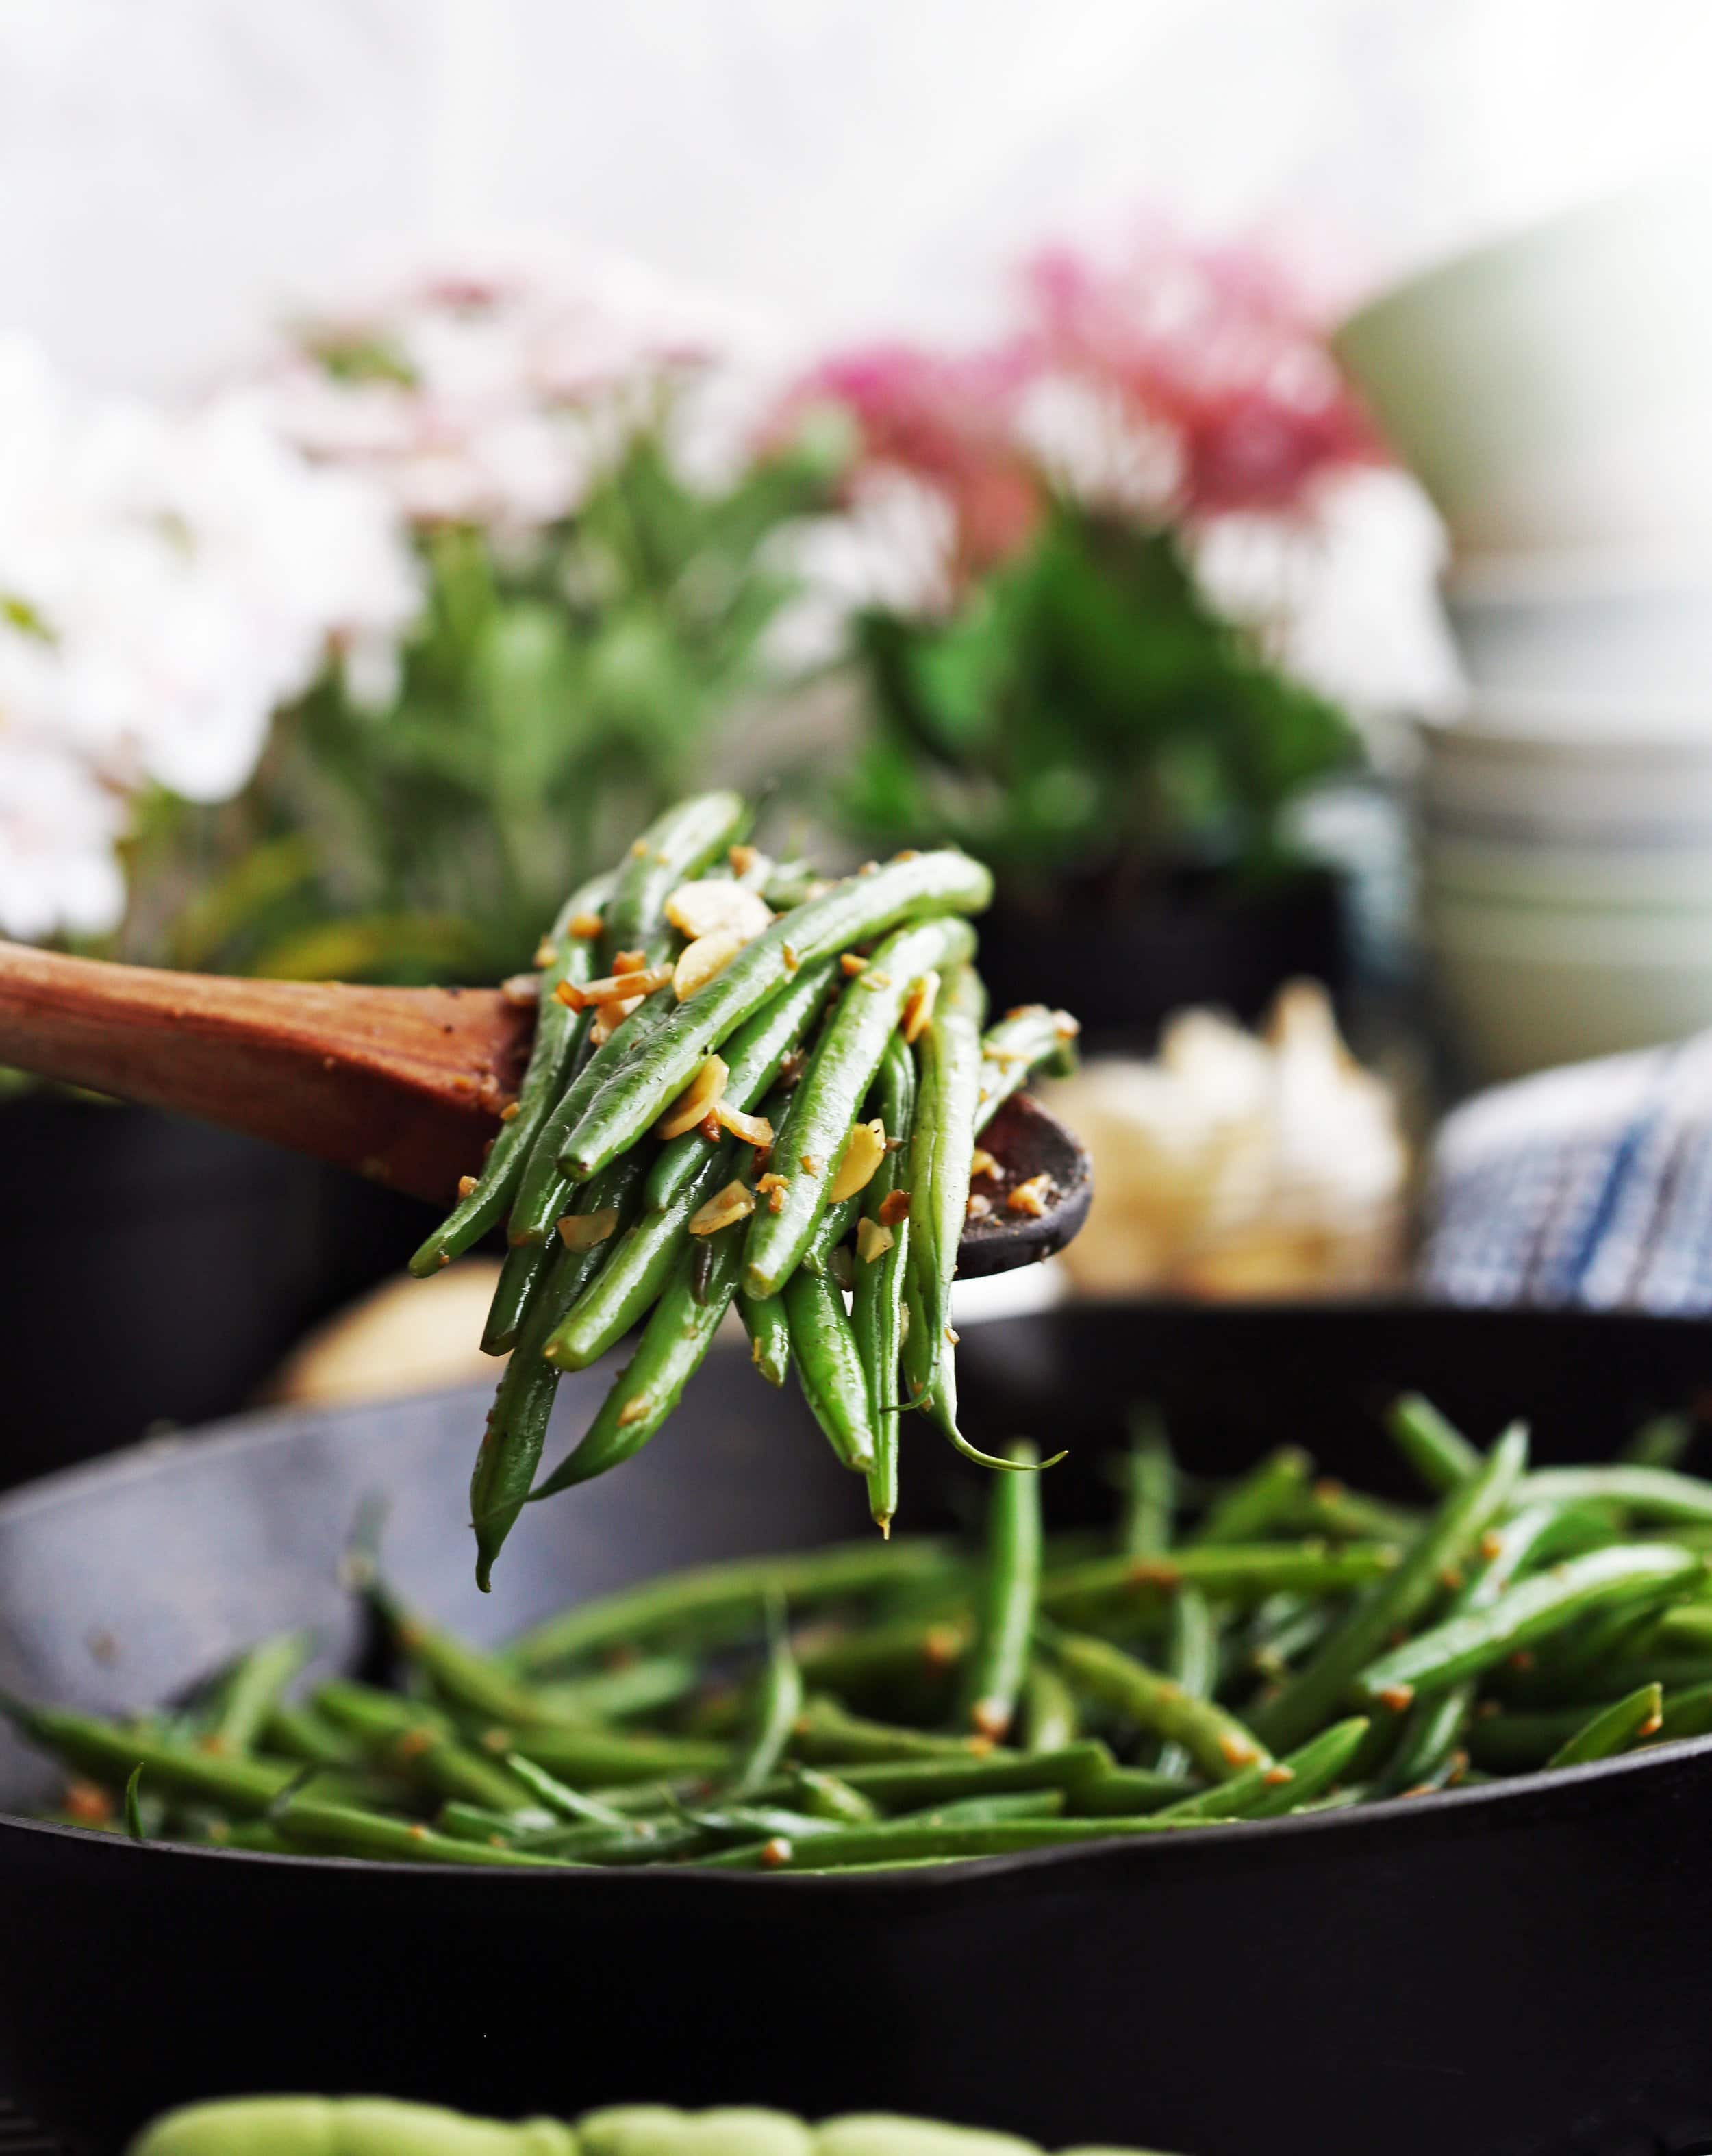 A large wooden spoon holding garlic ginger green beans with more green beans in a skillet in the background.